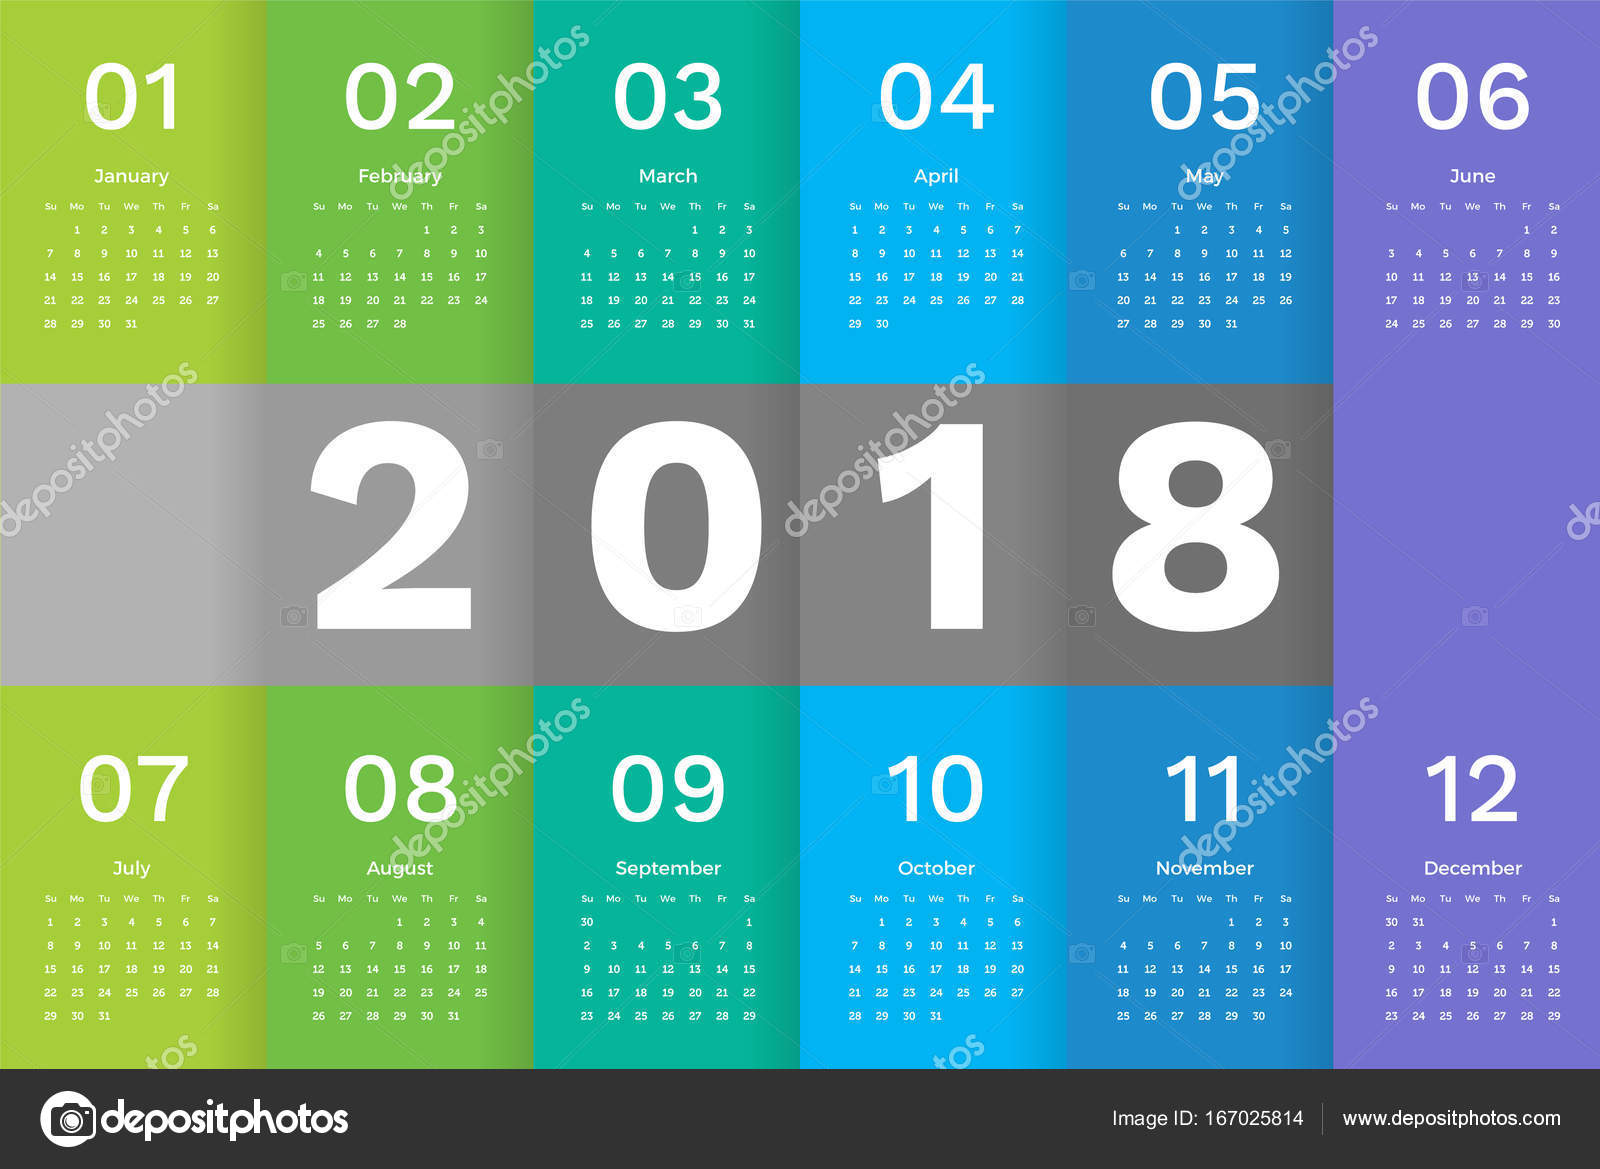 2018 calendar template simple minimal calendar template design with week starting sunday in green blue